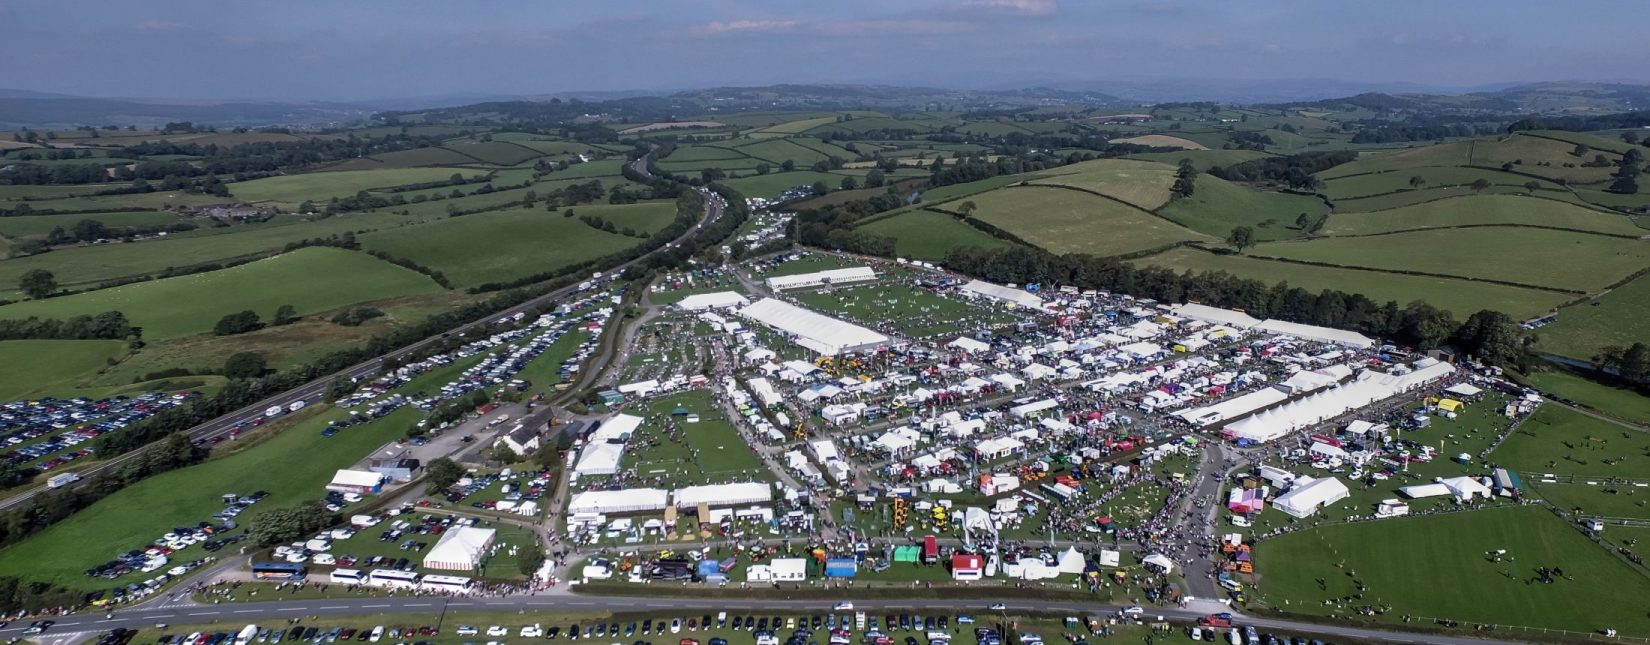 Westmorland County Show is Kendal's premier agricultural event